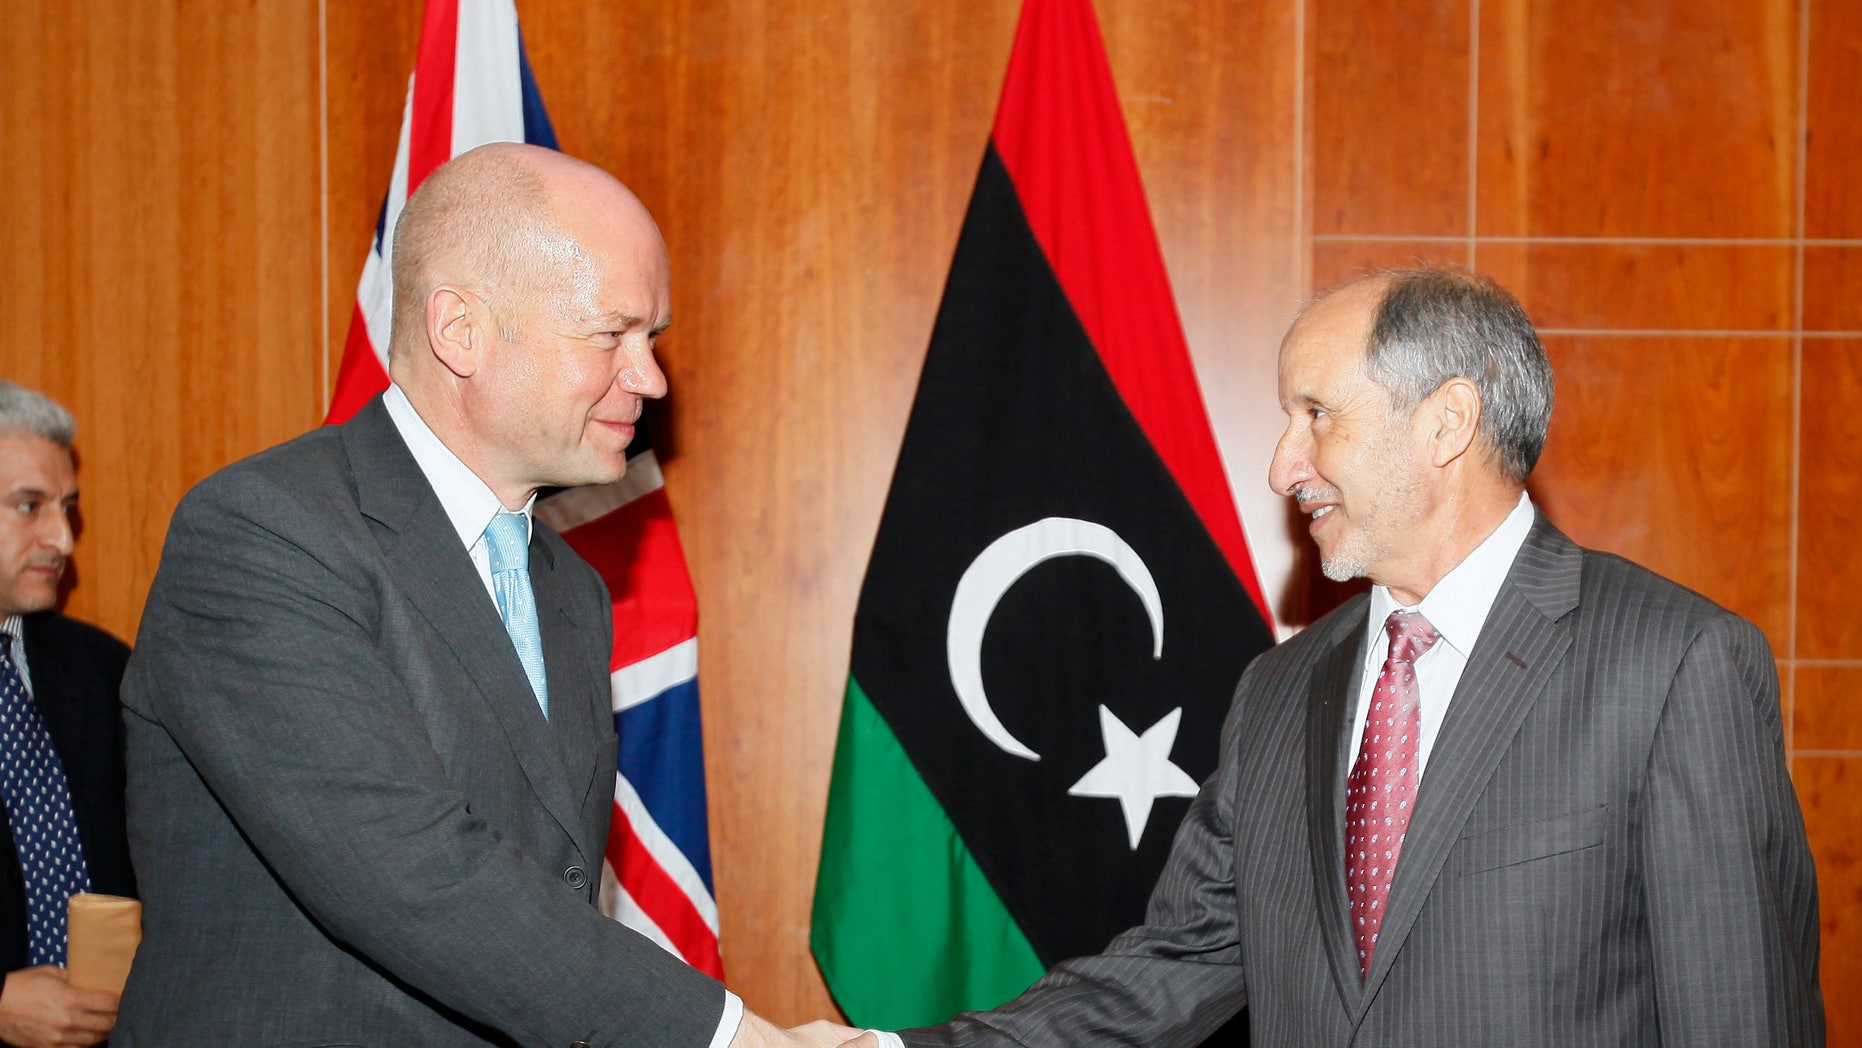 British Foreign Secretary William Hague, left, shakes hands with Libya's interim leader Mustafa Abdul-Jalil, the head of the governing National Transitional Council in Tripoli, Libya, Monday, Oct. 17, 2011.